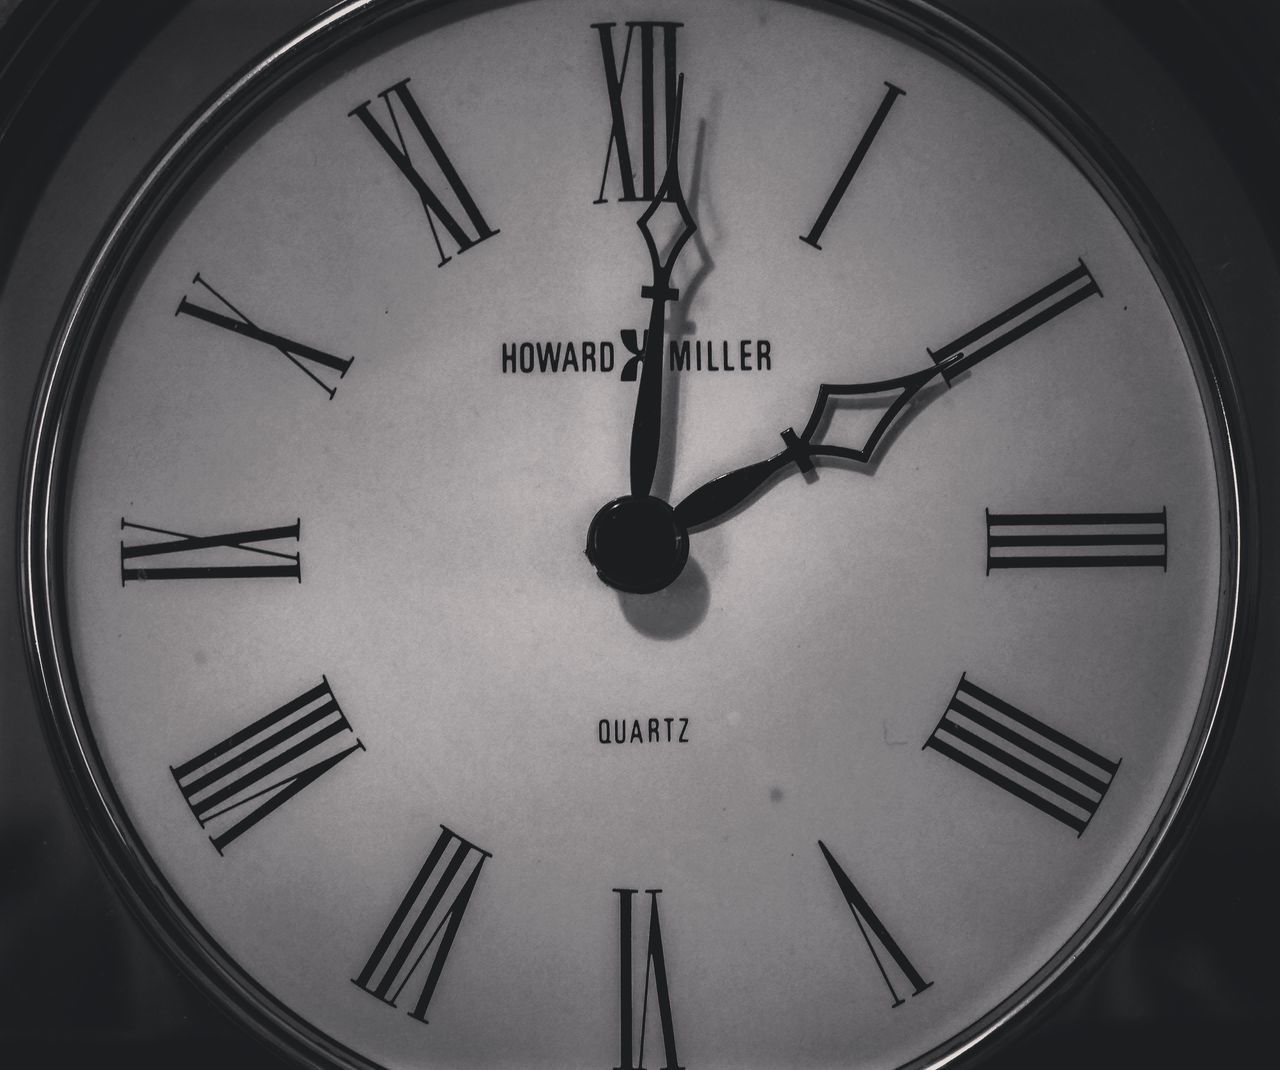 B&w Clock Clockwork Time Falling Reflection Tick Ticking Away Photography In Motion Urban Spring Fever Here Belongs To Me